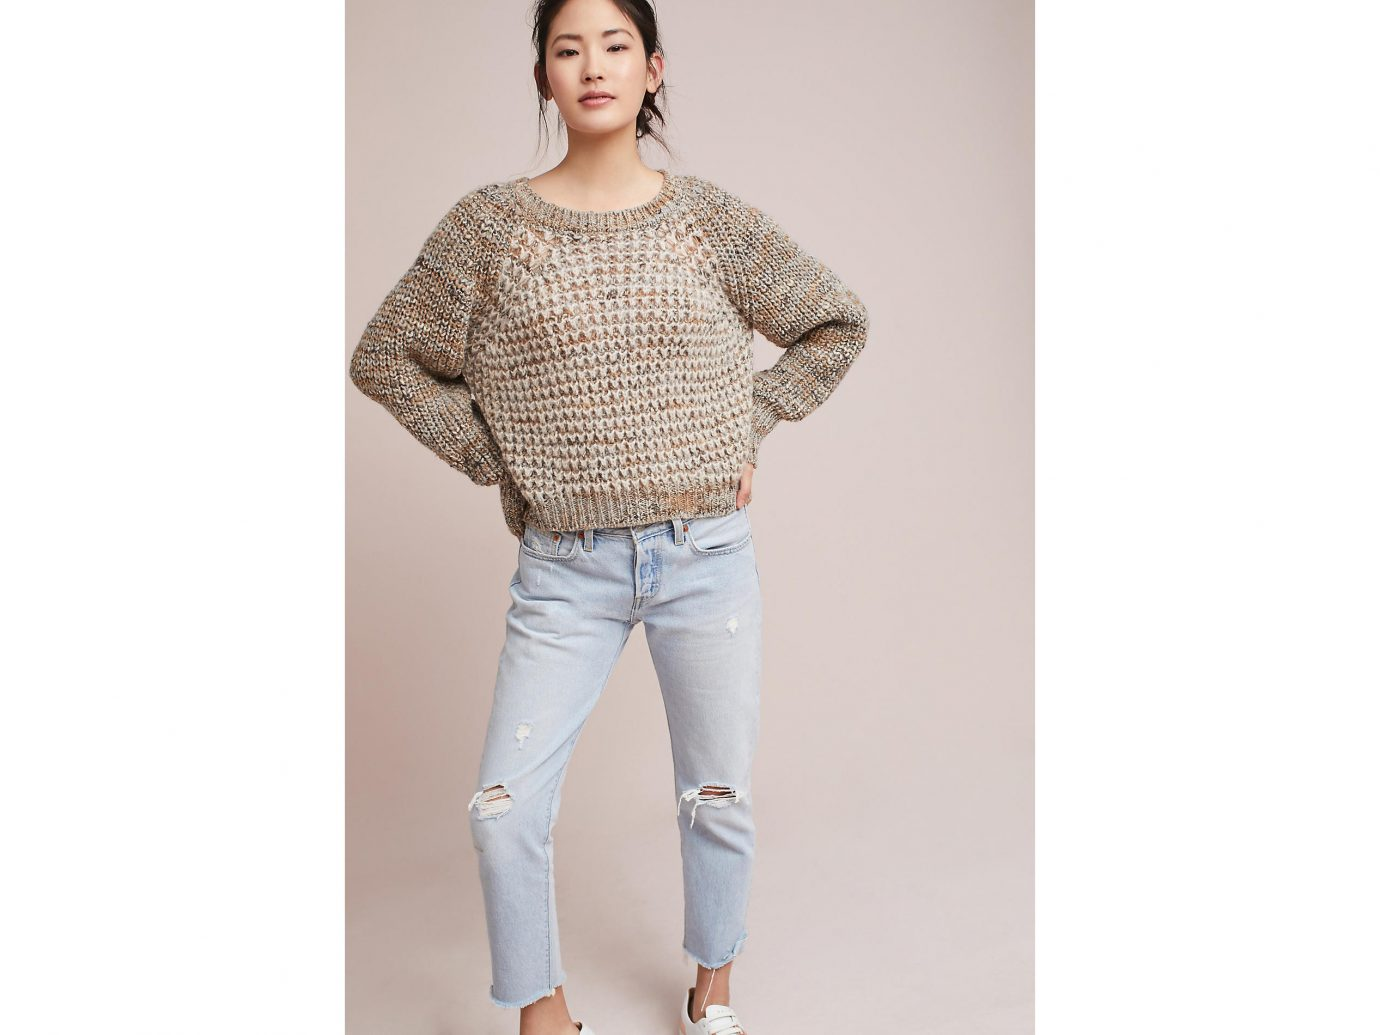 Travel Shop Travel Tips person clothing shoulder jeans fashion model sleeve neck outerwear posing blouse trousers waist beige sweater joint pattern trouser